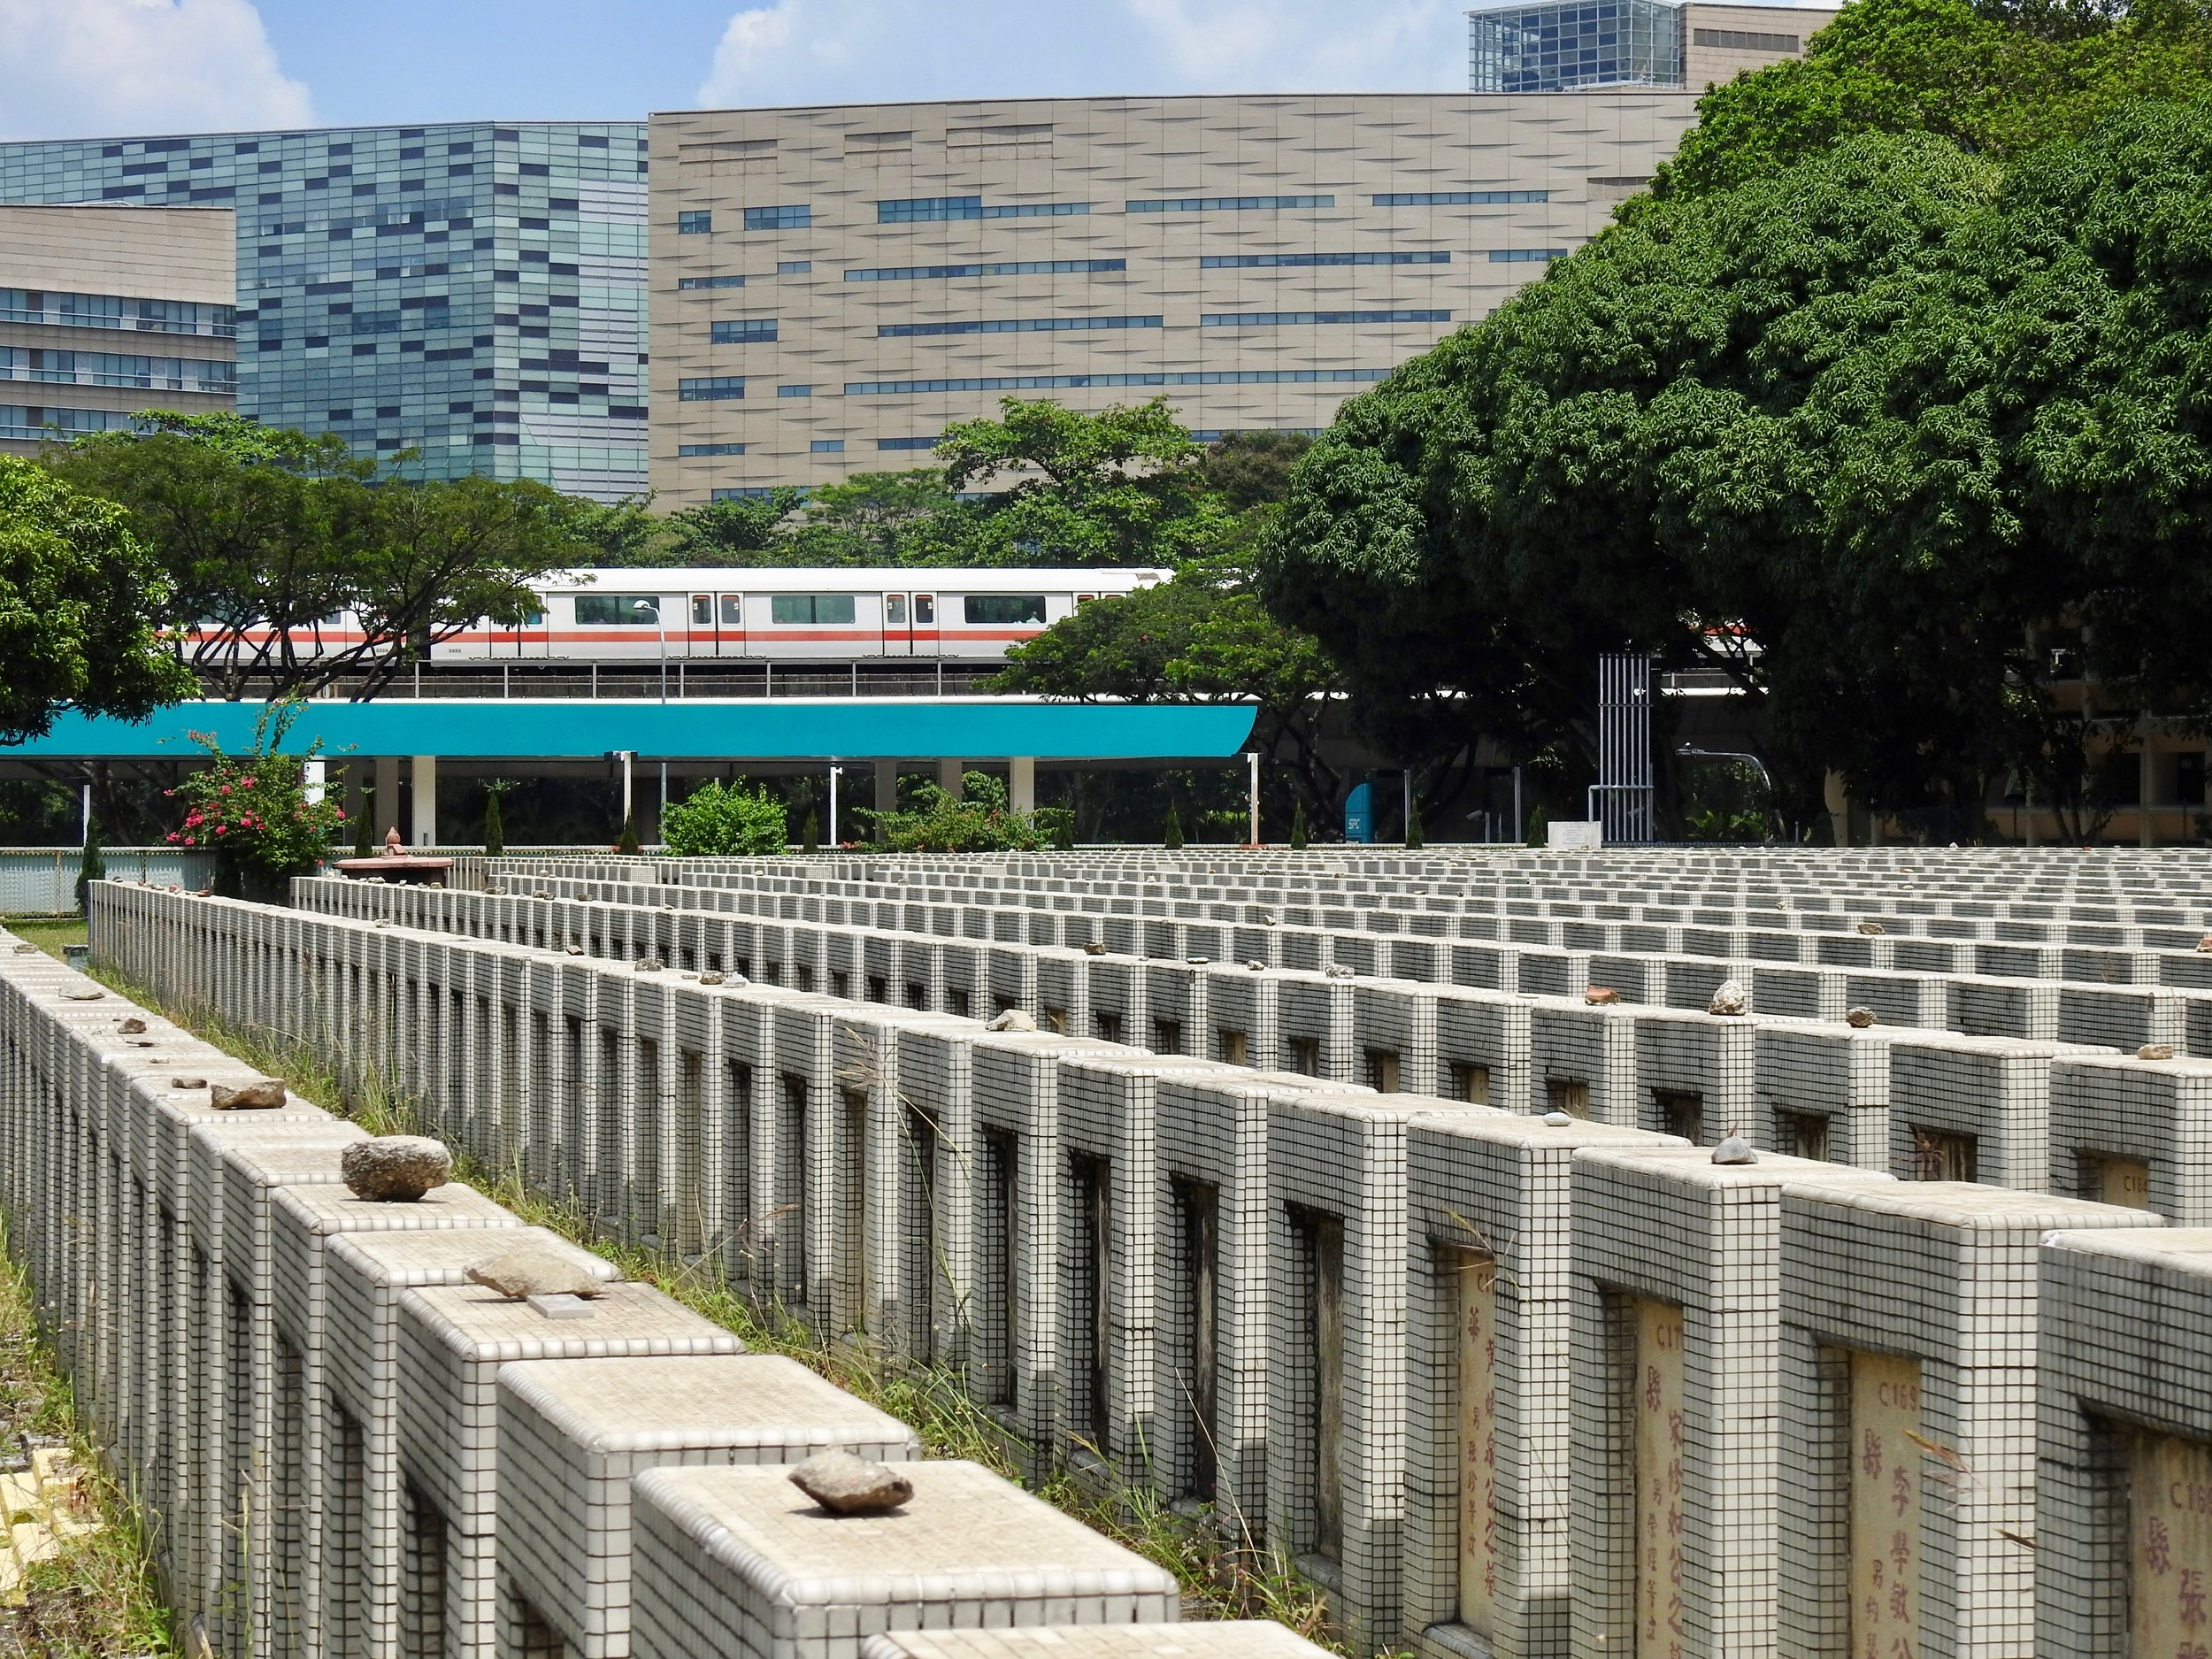 Cemetery in Singapore. While the birth rate declined 4 percent, the number of deaths rose by 4 percent. (C) Photo: Remko Tanis